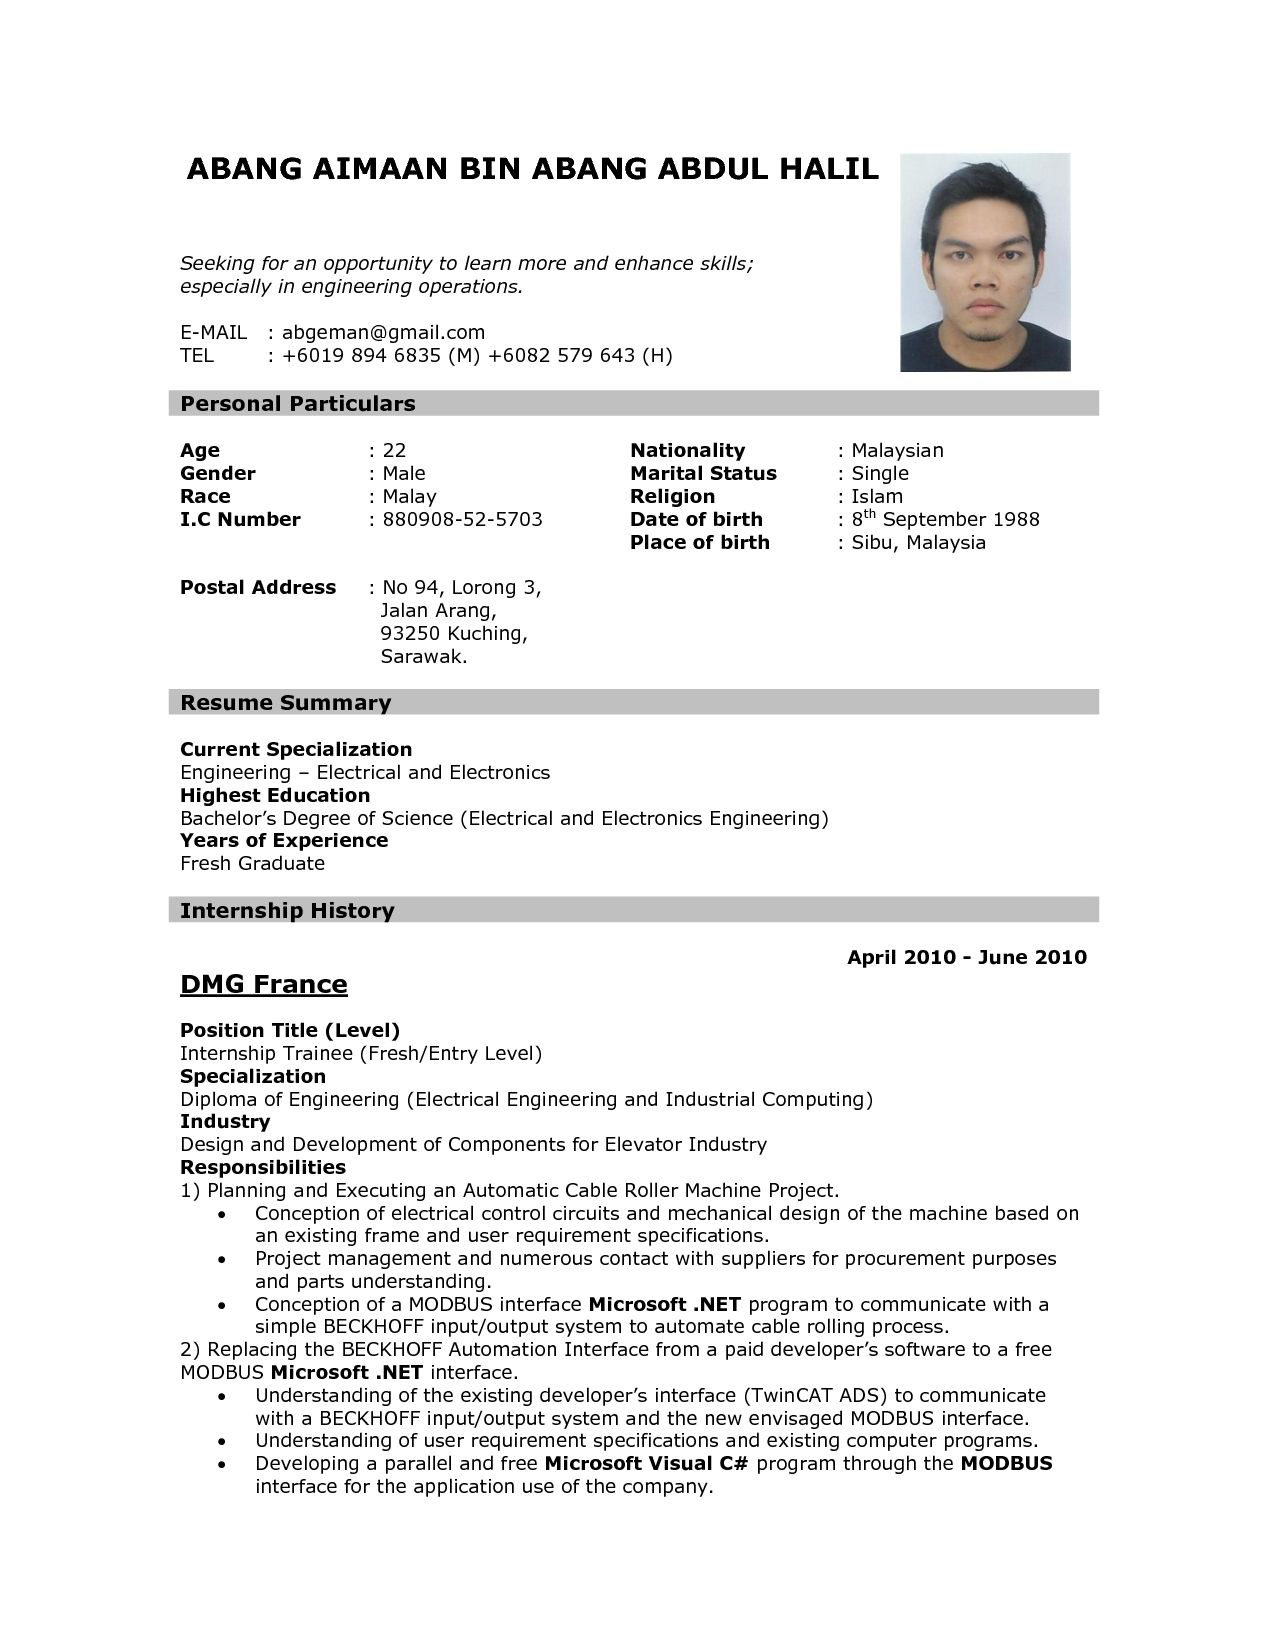 Resume Resume Format Sample For Job Application format of resume for job application to download data sample the applying